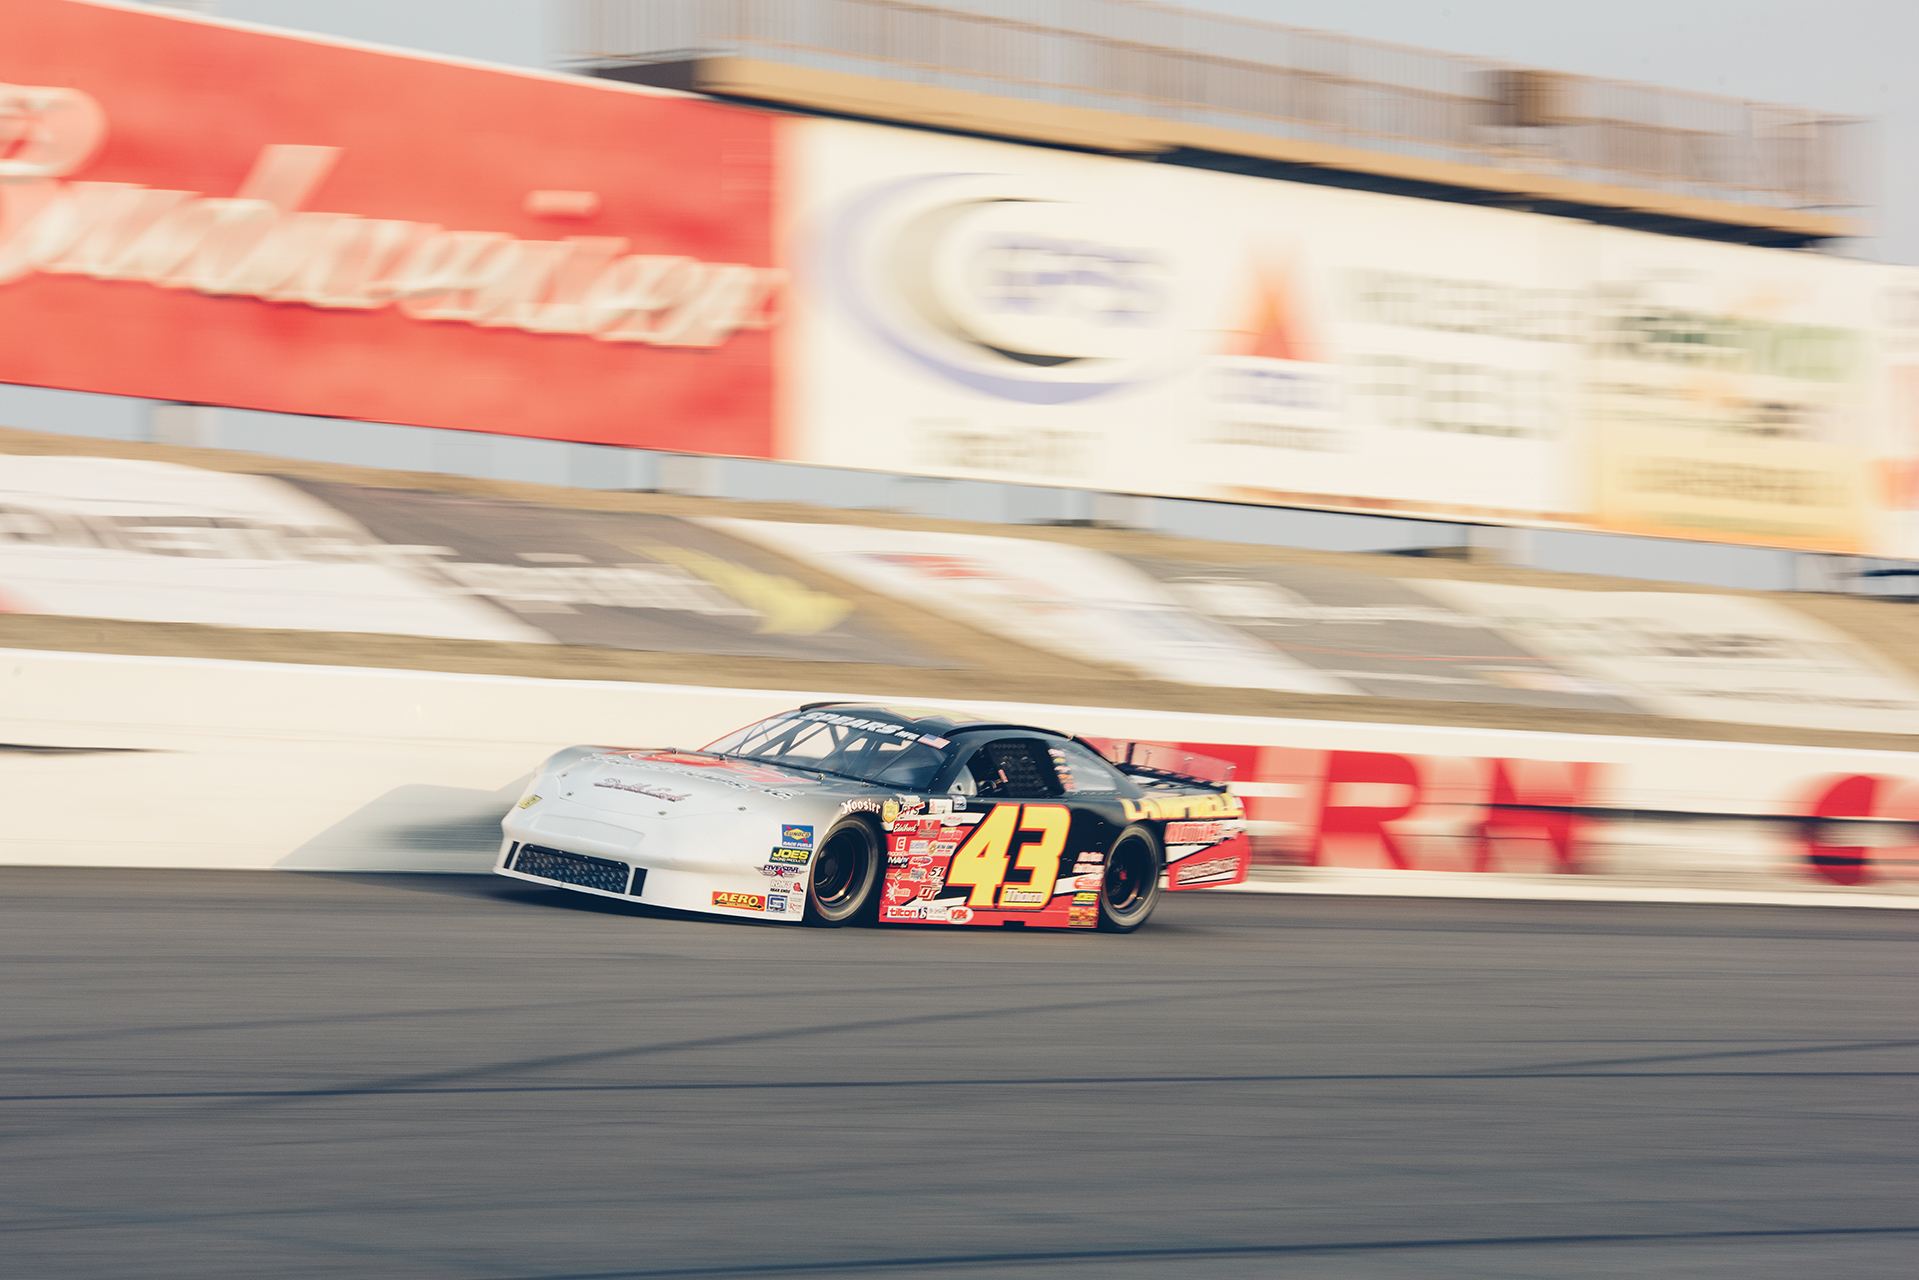 Qualifying at KCRP, Derek Thorn of Lakeport, is a NASCAR Pro Series West and Southwest Tour champion.